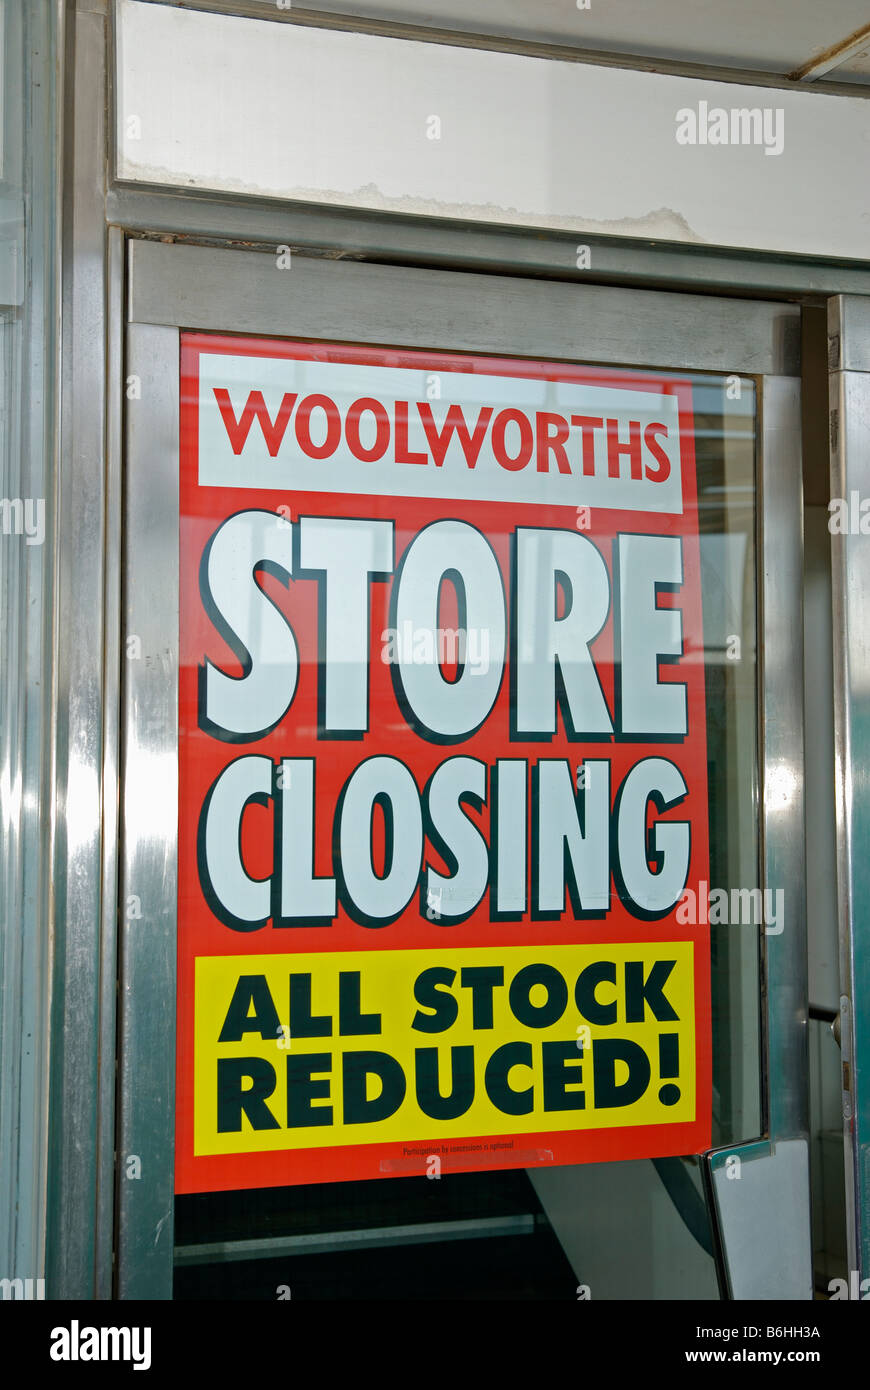 a woolworths store closing sign,uk - Stock Image